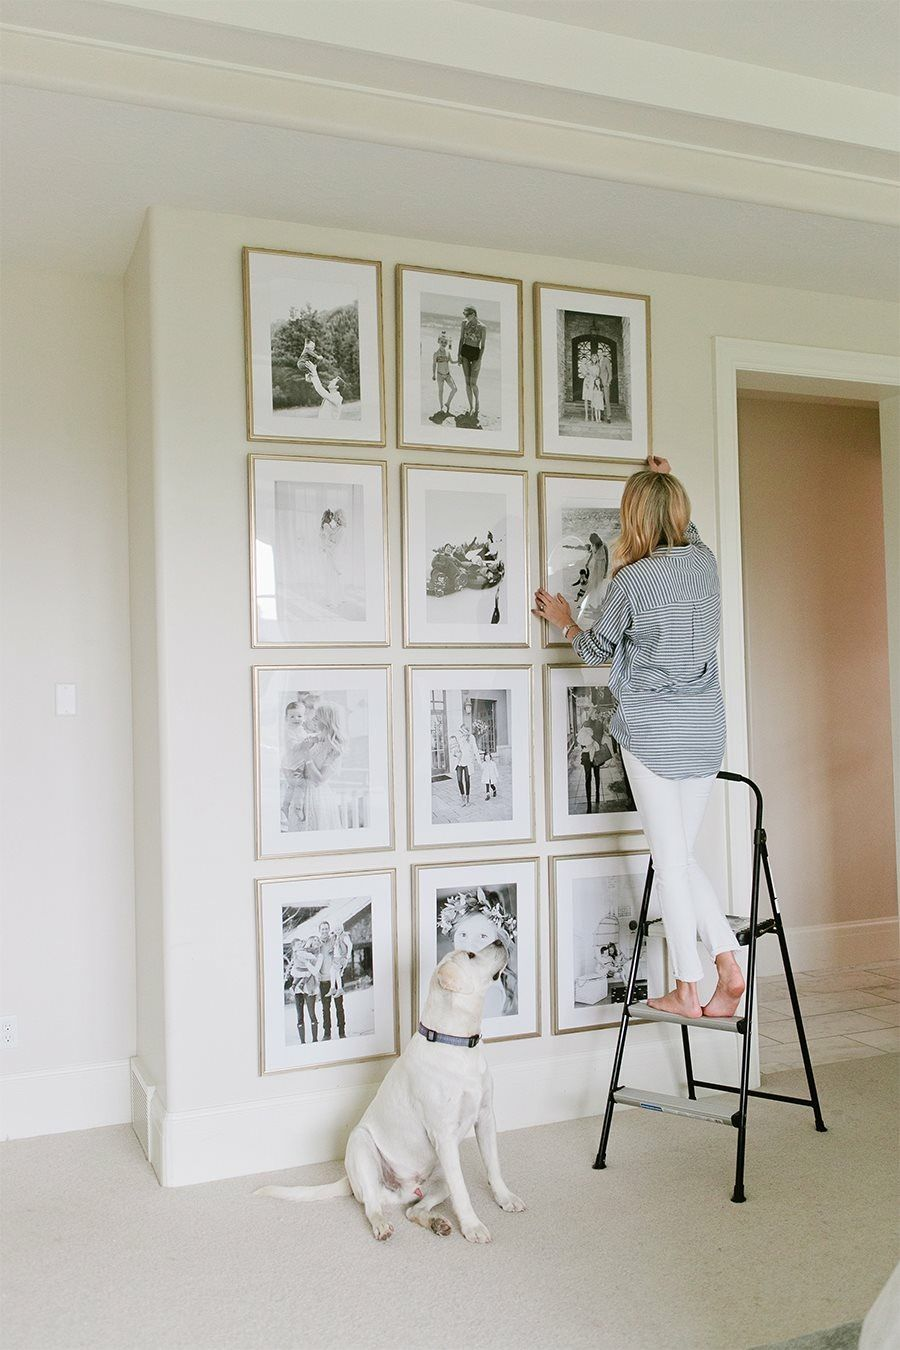 Pin by Stephanie Regez on Entryway | Pinterest | Gallery wall, Photo ...